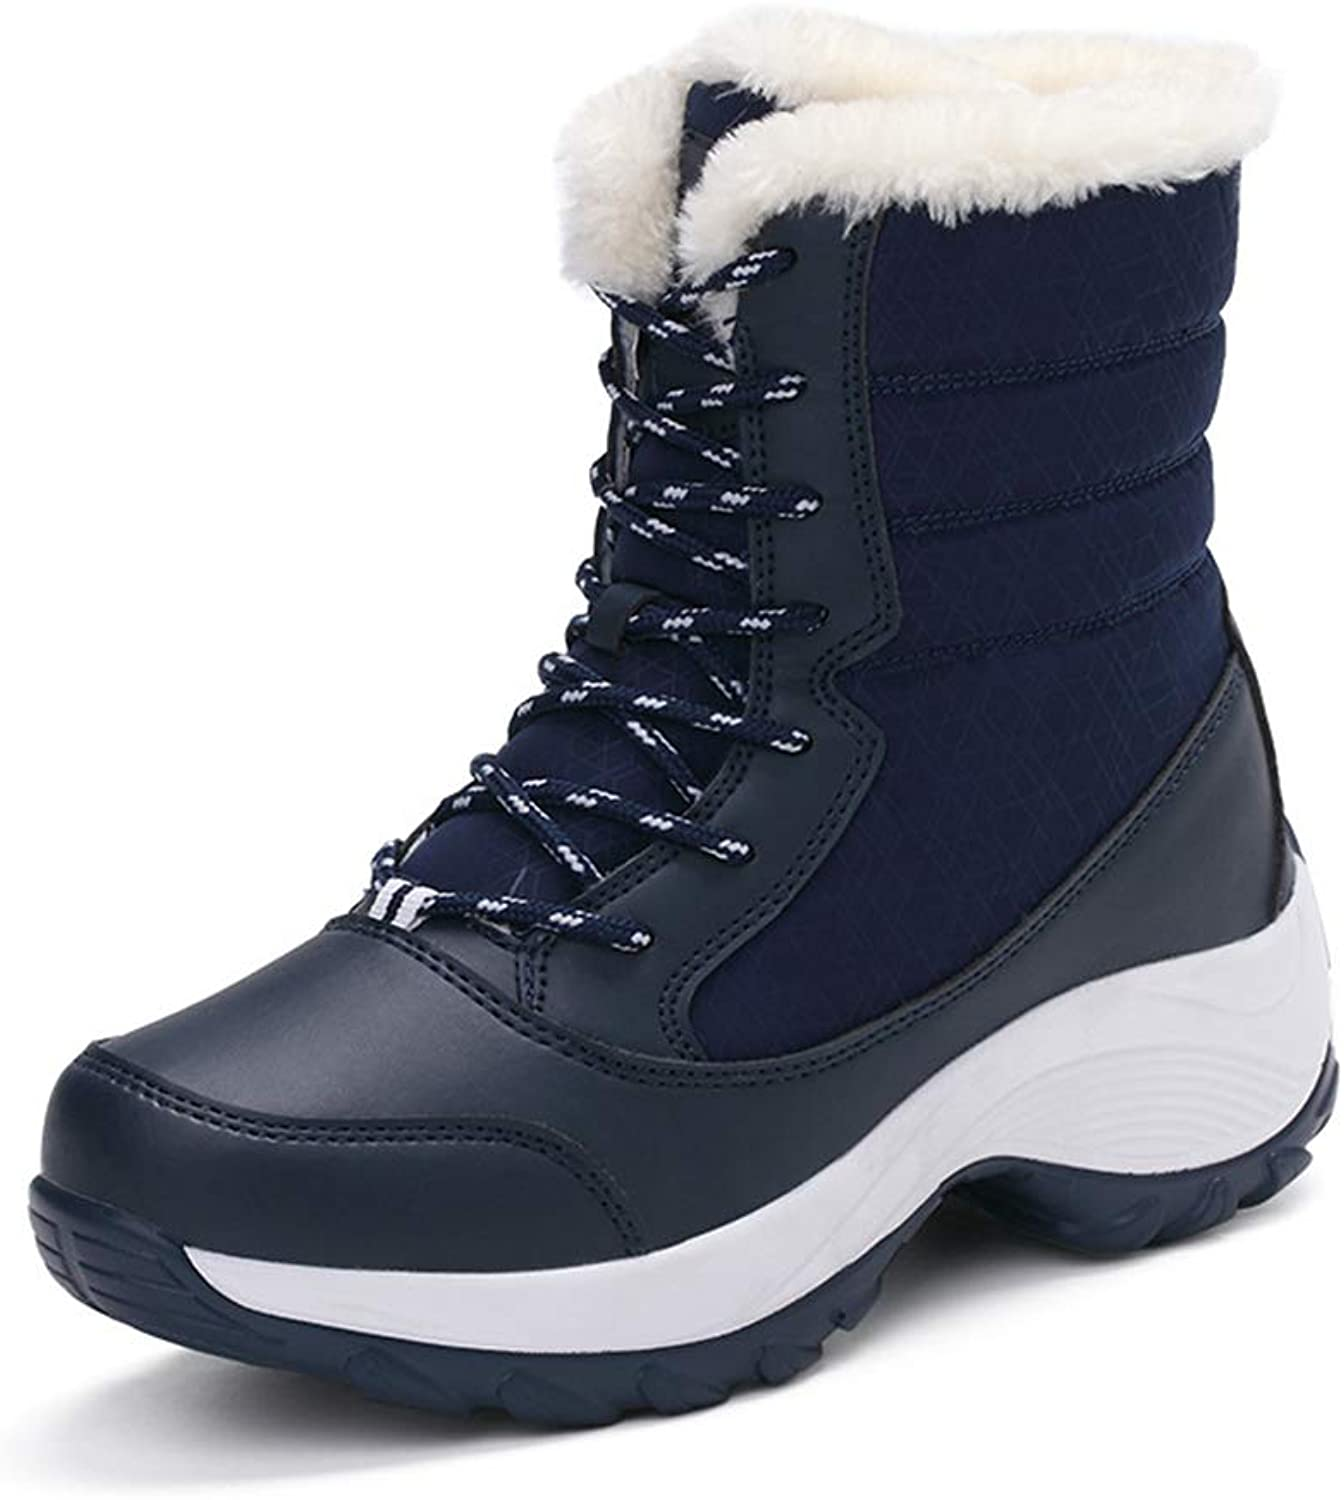 Women's Snow Boots, Winter New Plus Velvet High Help Sneaker Ladies Lace Wild Waterproof Shaking shoes (color   B, Size   41)